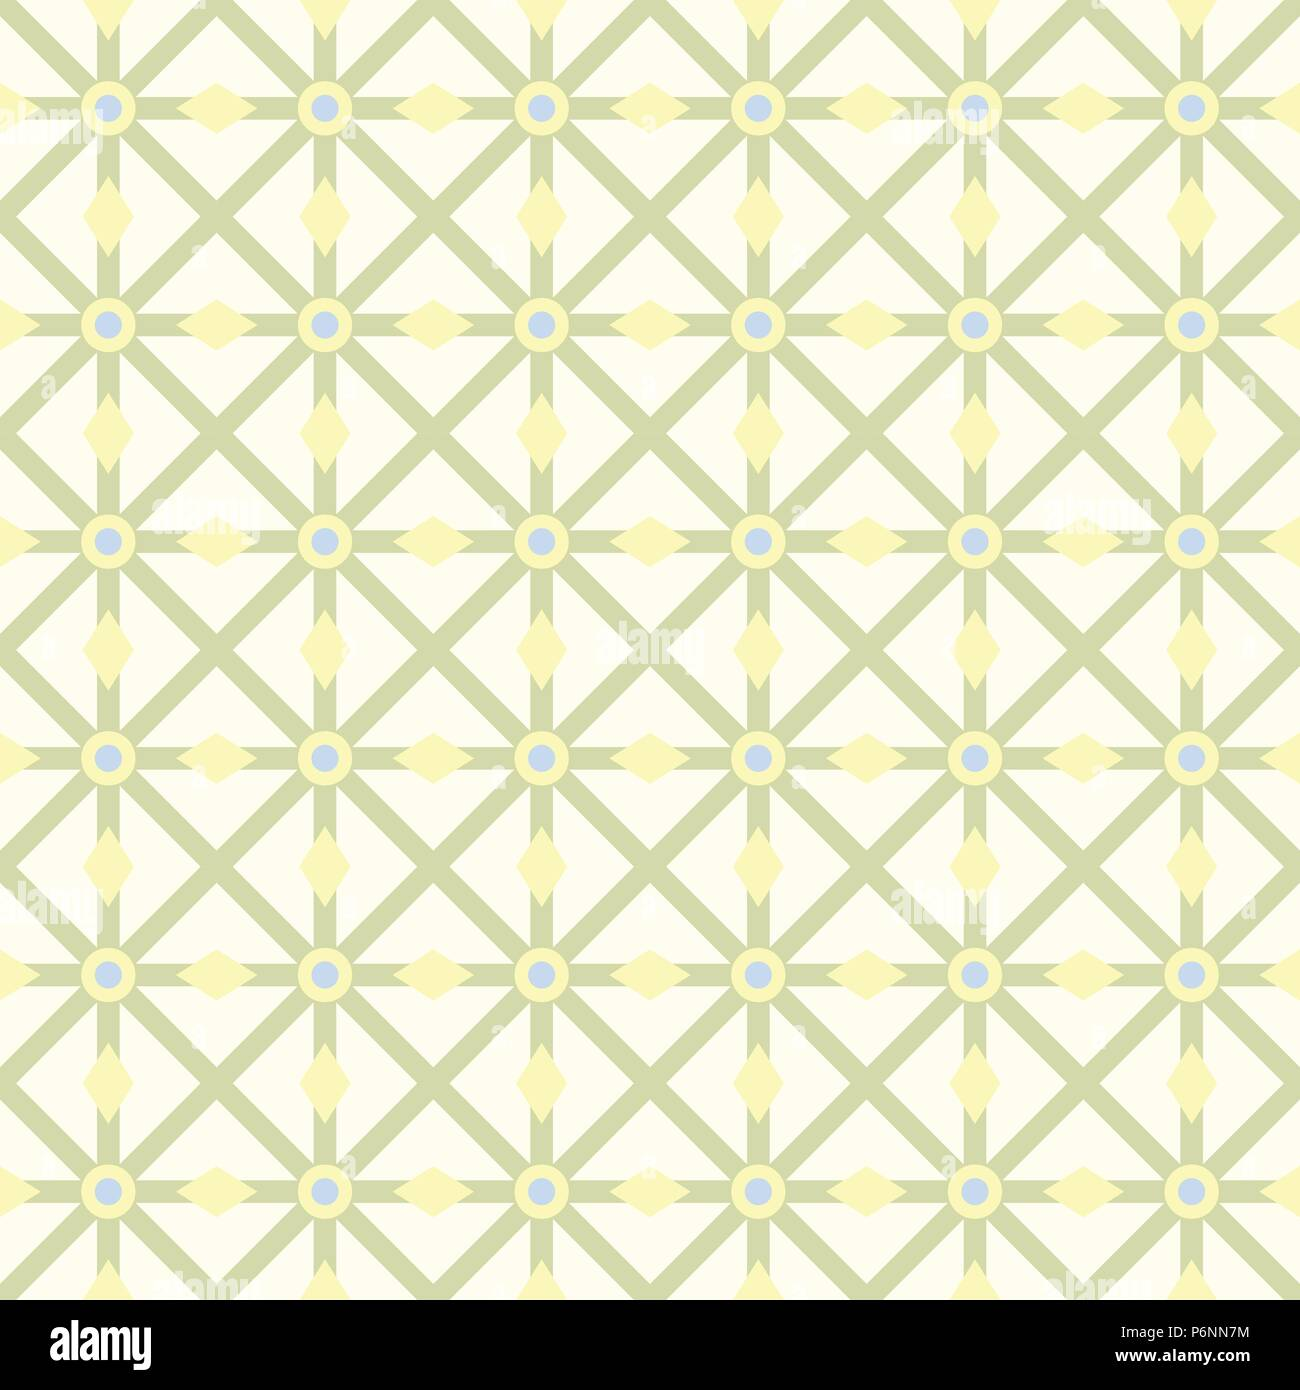 Green asterisk or crossed line and circle and triangle seamless pattern. Abstract and classic pattern style for design - Stock Vector